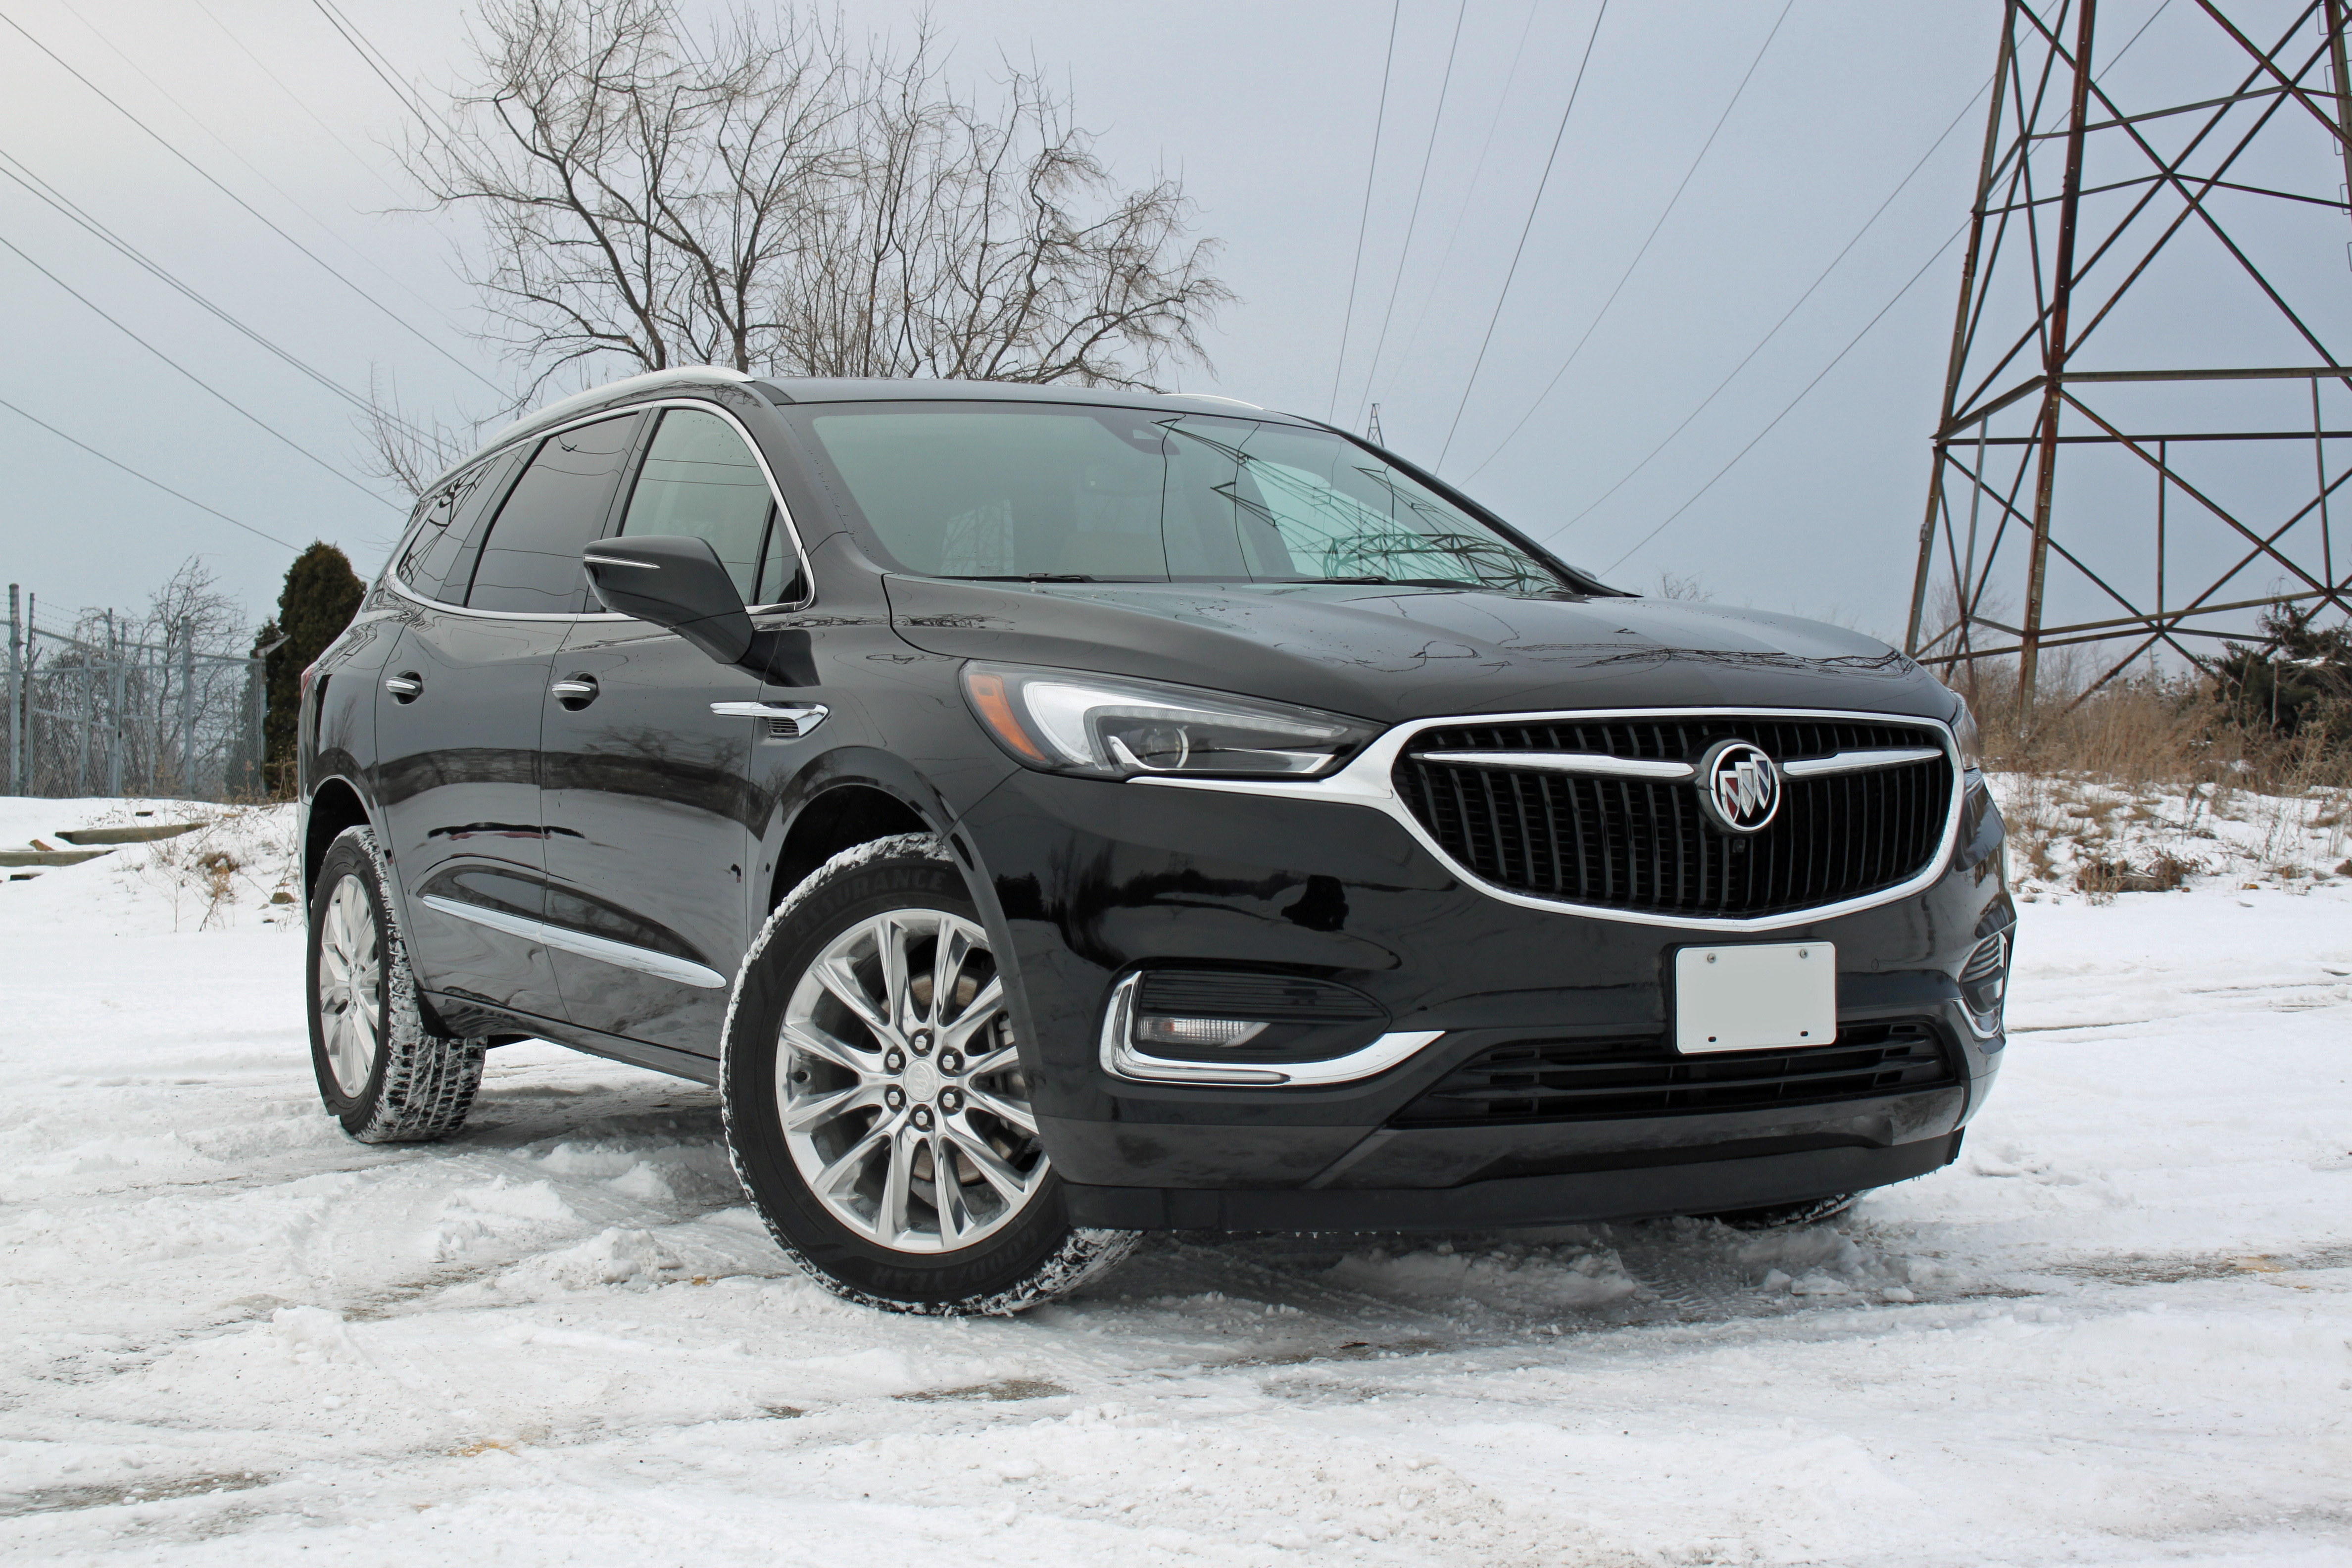 ah featured buick reviews for family premium crossover a review androidheadlines enclave the am whole com